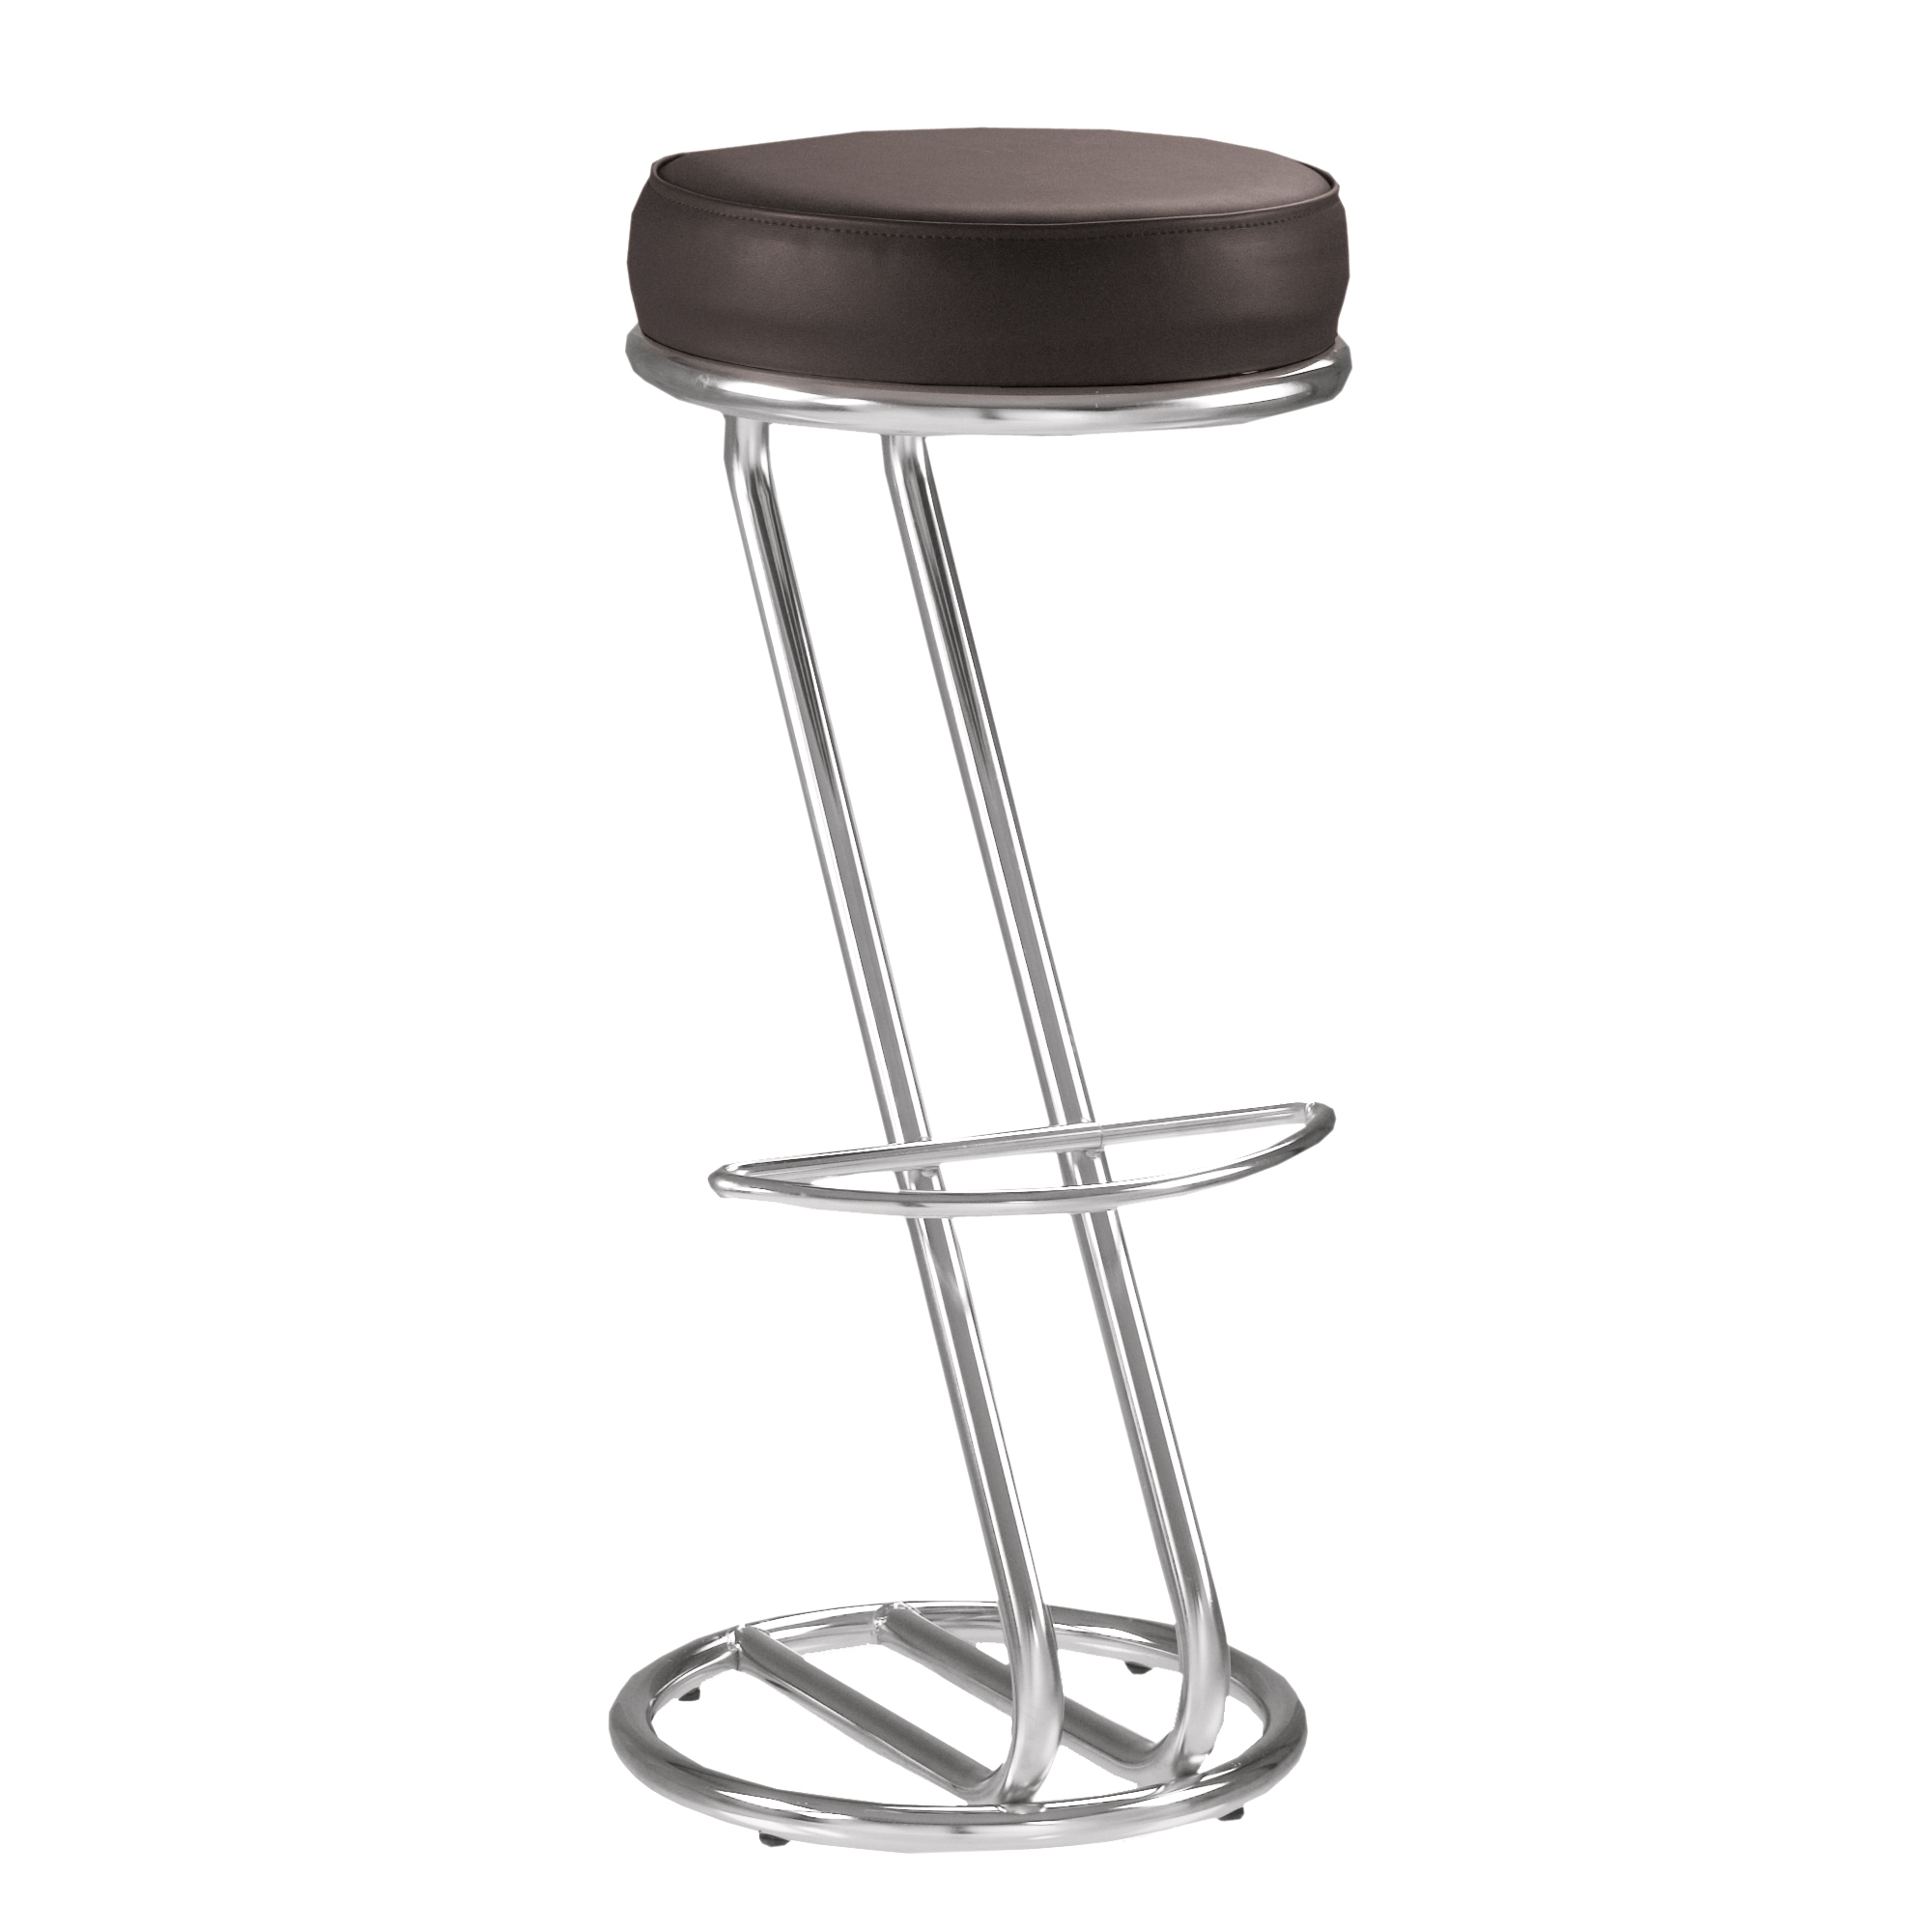 tabouret de bar zeta hoker box 2 005004v4 fauteuil de. Black Bedroom Furniture Sets. Home Design Ideas